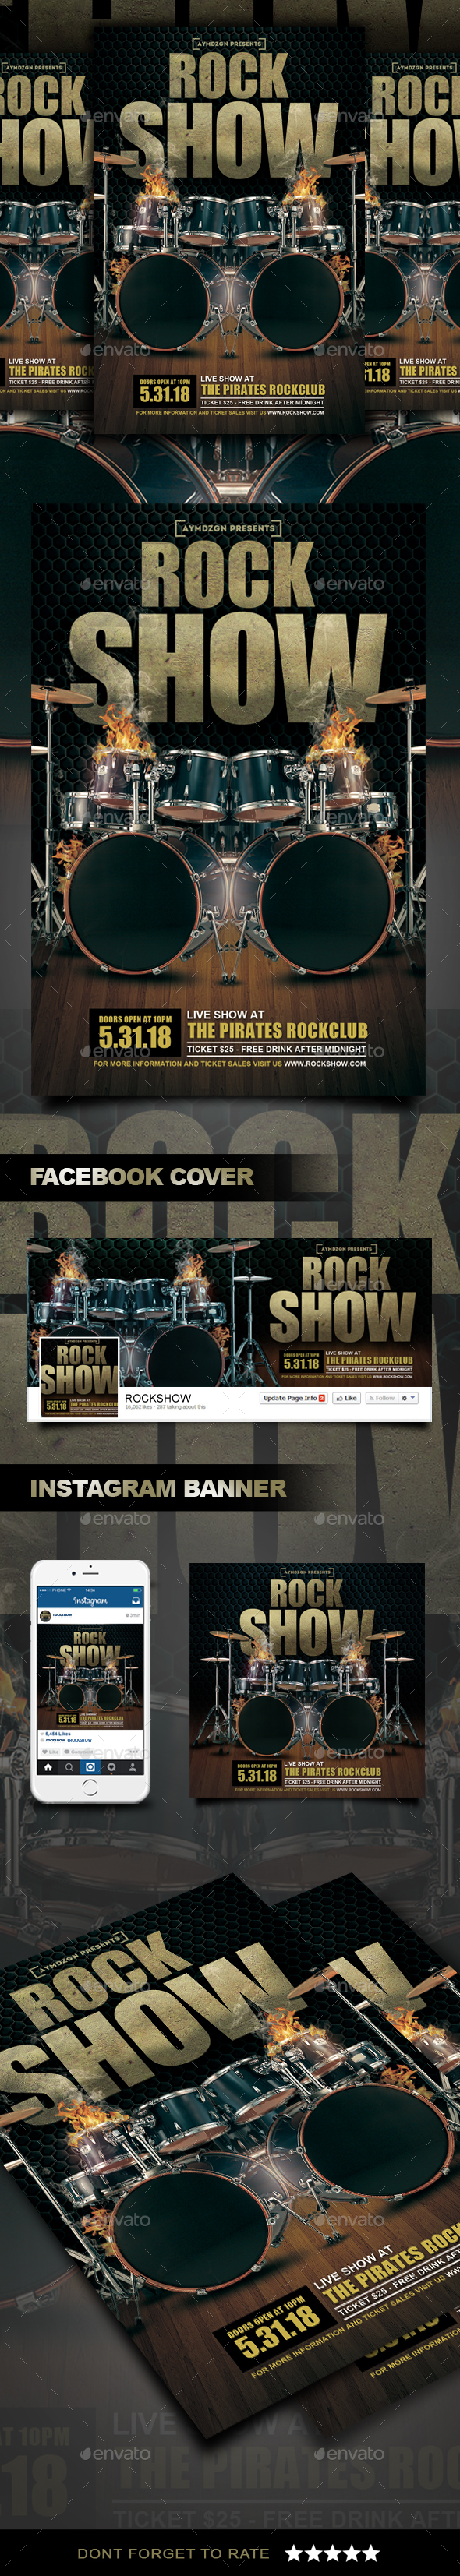 Rock Show Flyer - Clubs & Parties Events